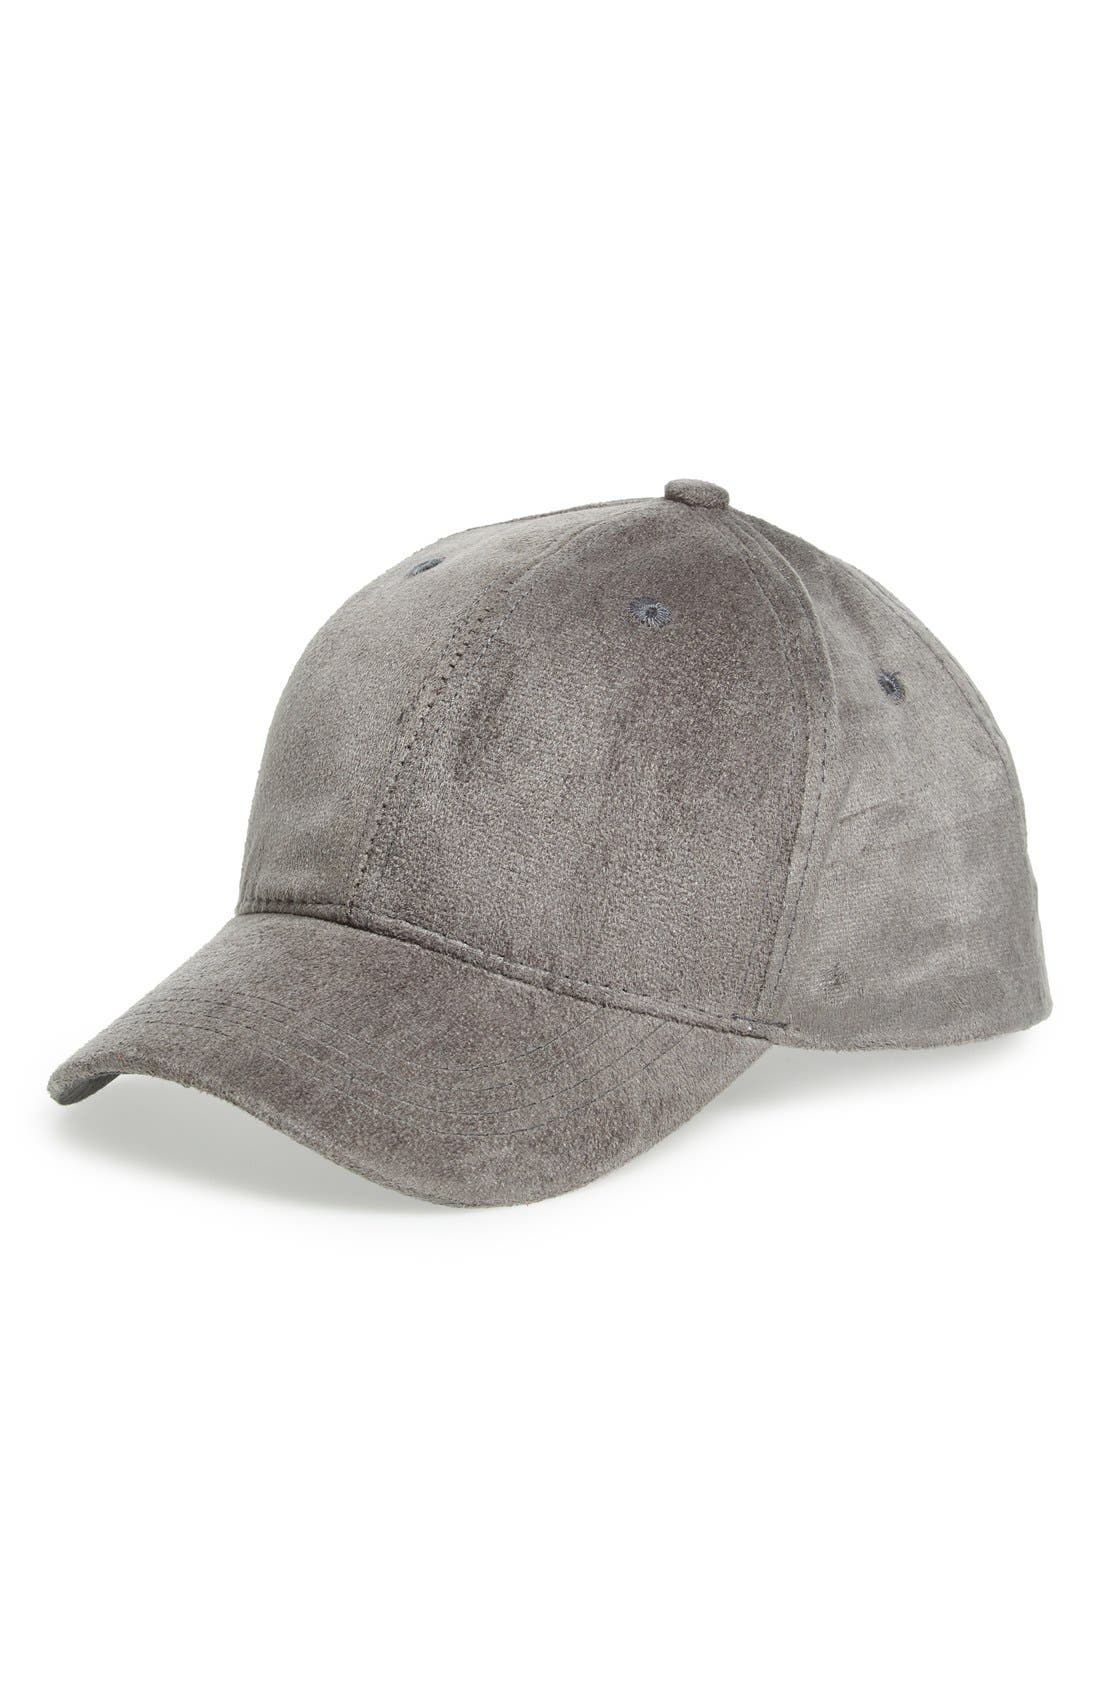 Alternate Image 1 Selected - BP. Faux Suede Ball Cap